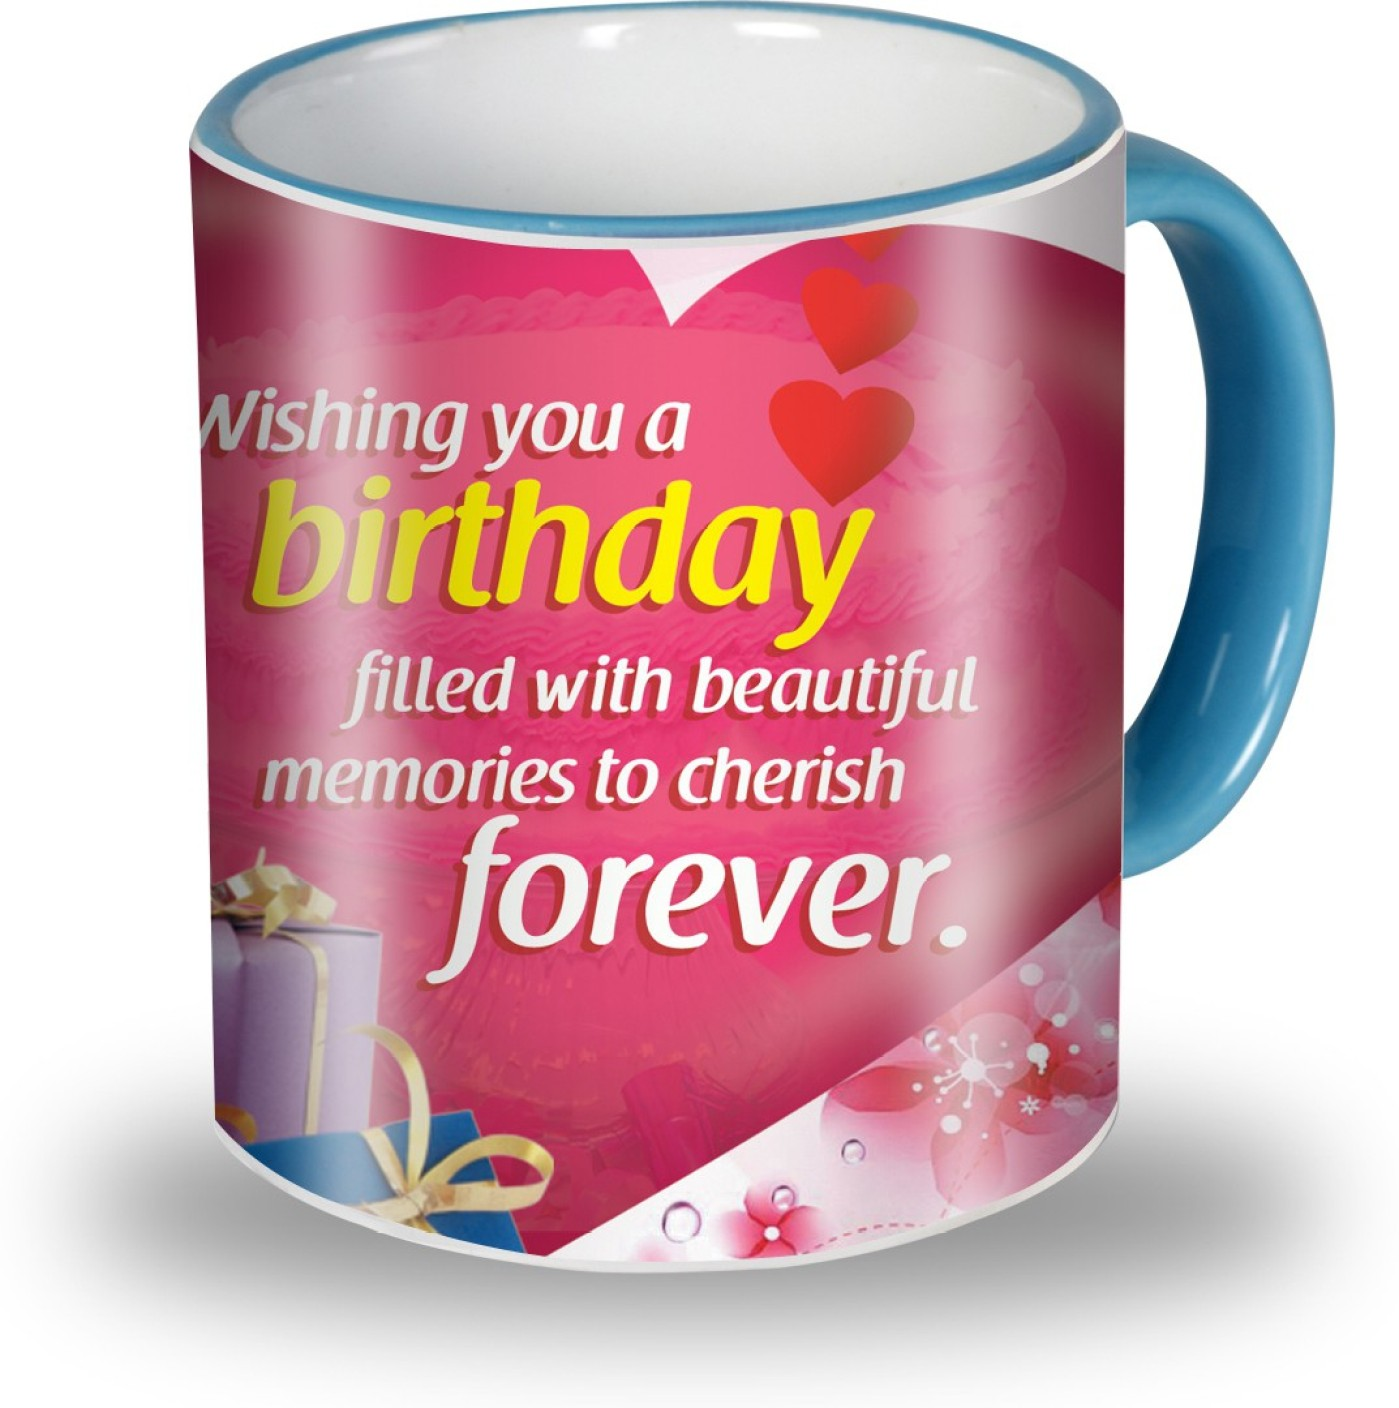 Presto Birthday Gift For Your Family Friends Girlfriend Or